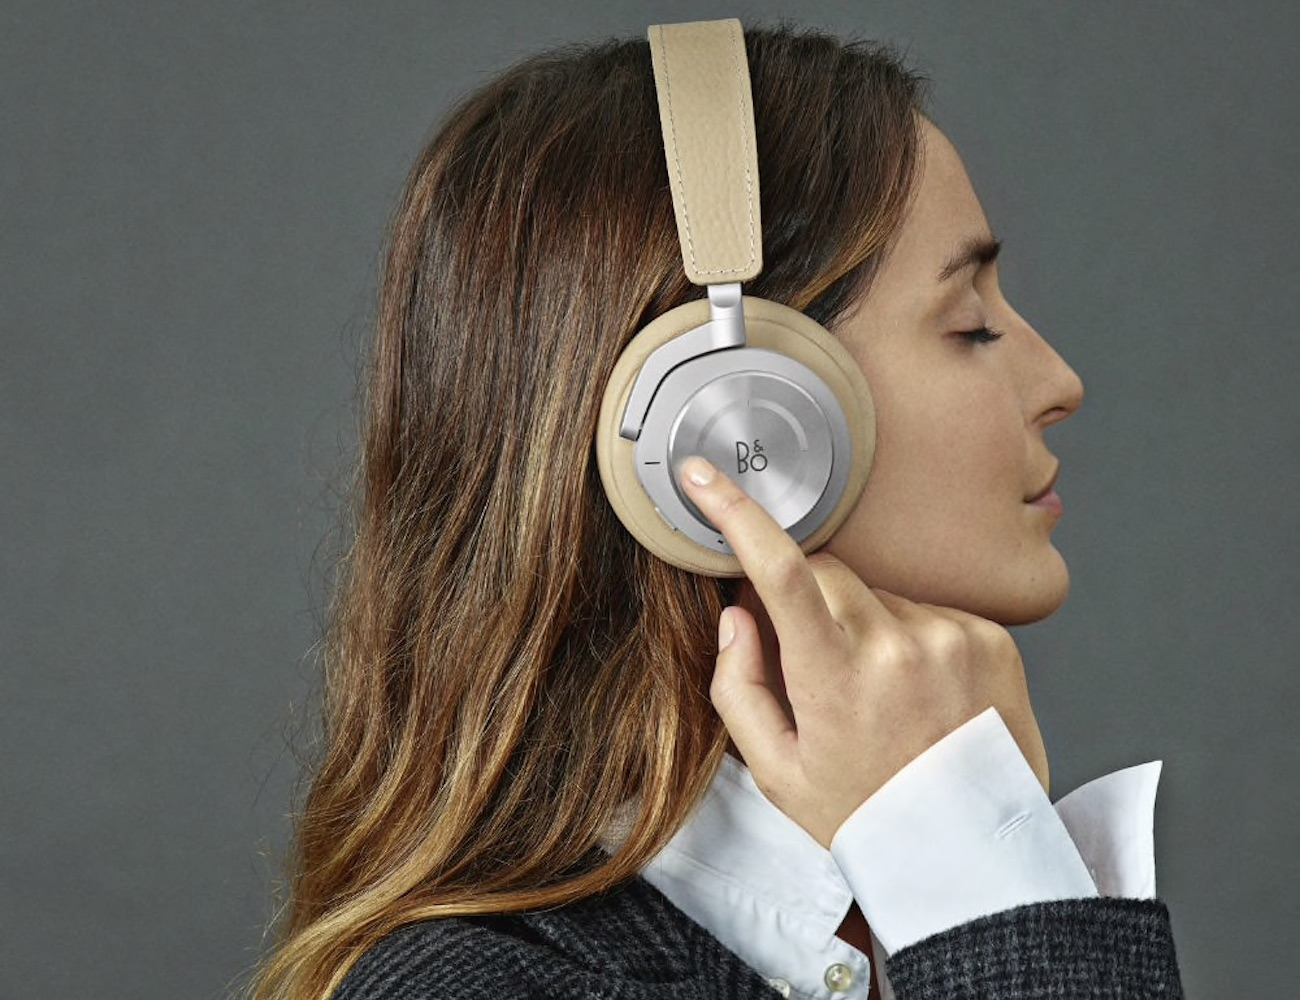 Beoplay H9i ANC Wireless Over-Ear Headphones